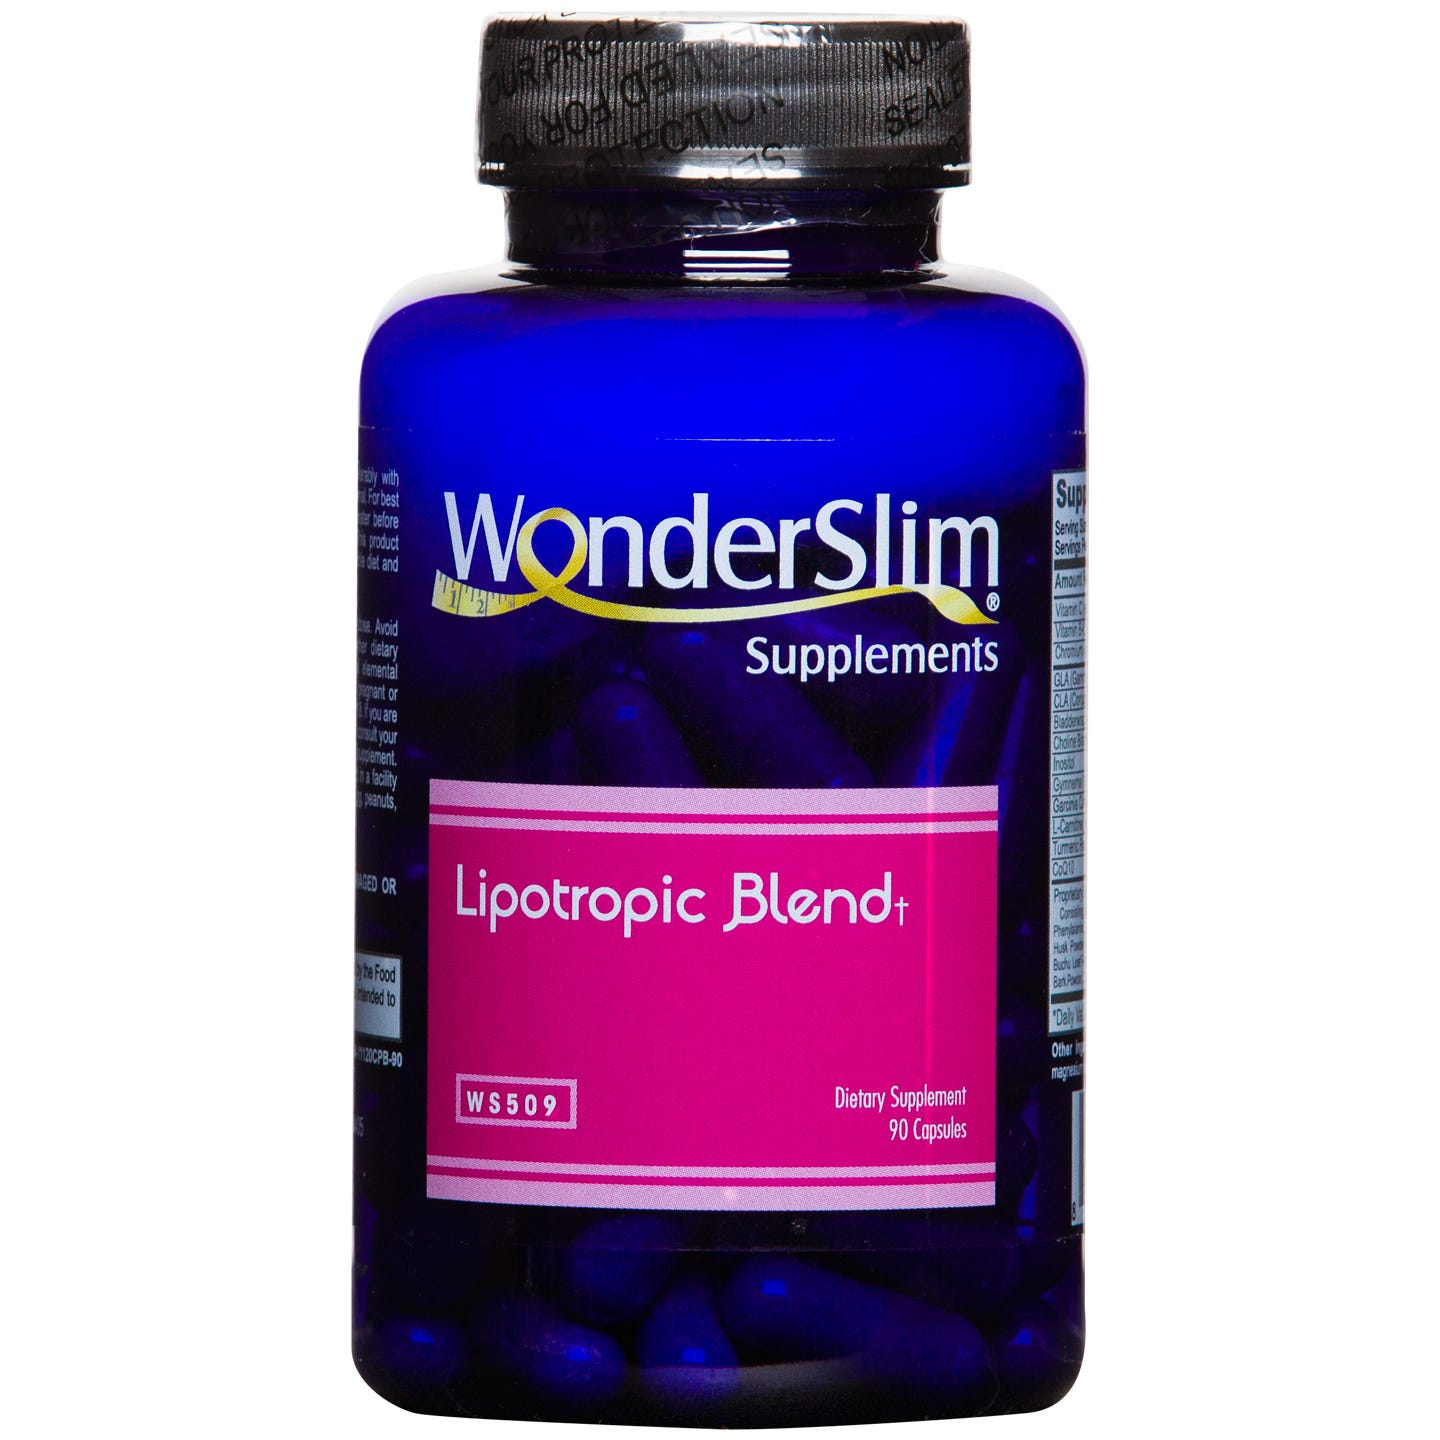 WonderSlim Lipotropic Blend (90 Ct)